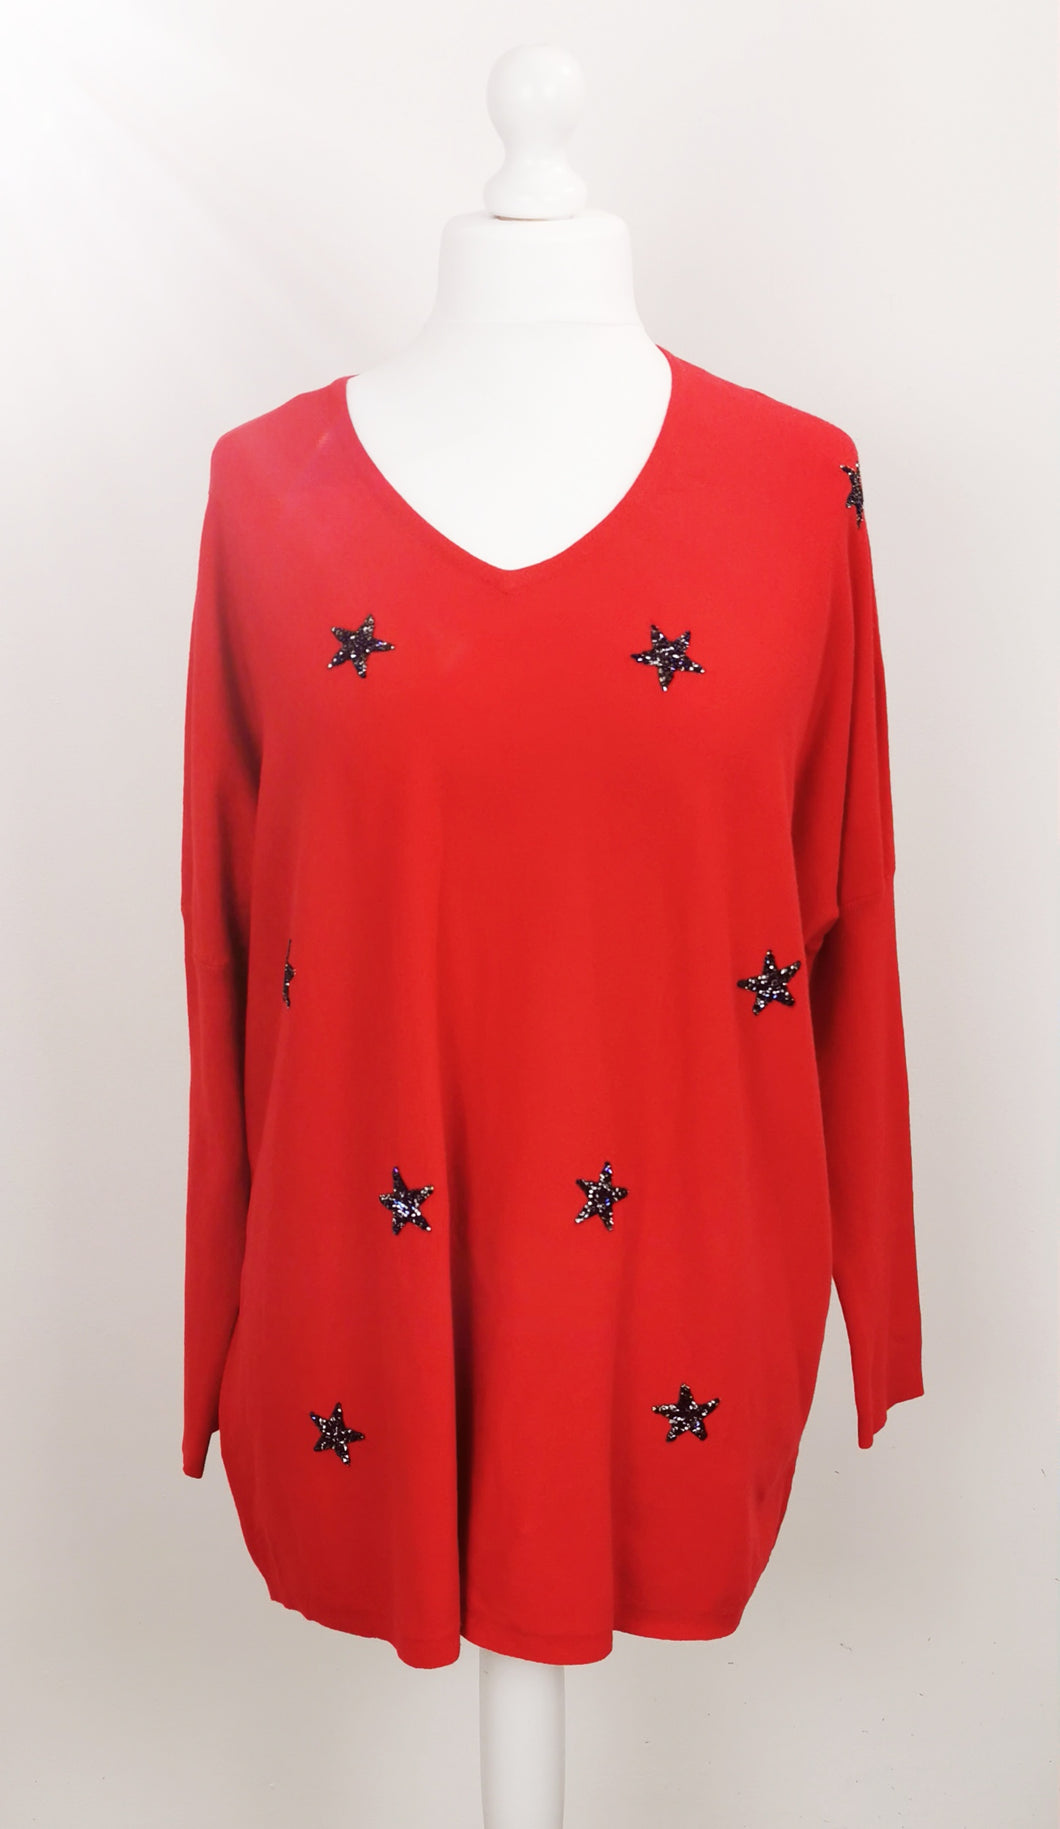 Oversized glitter star jumper